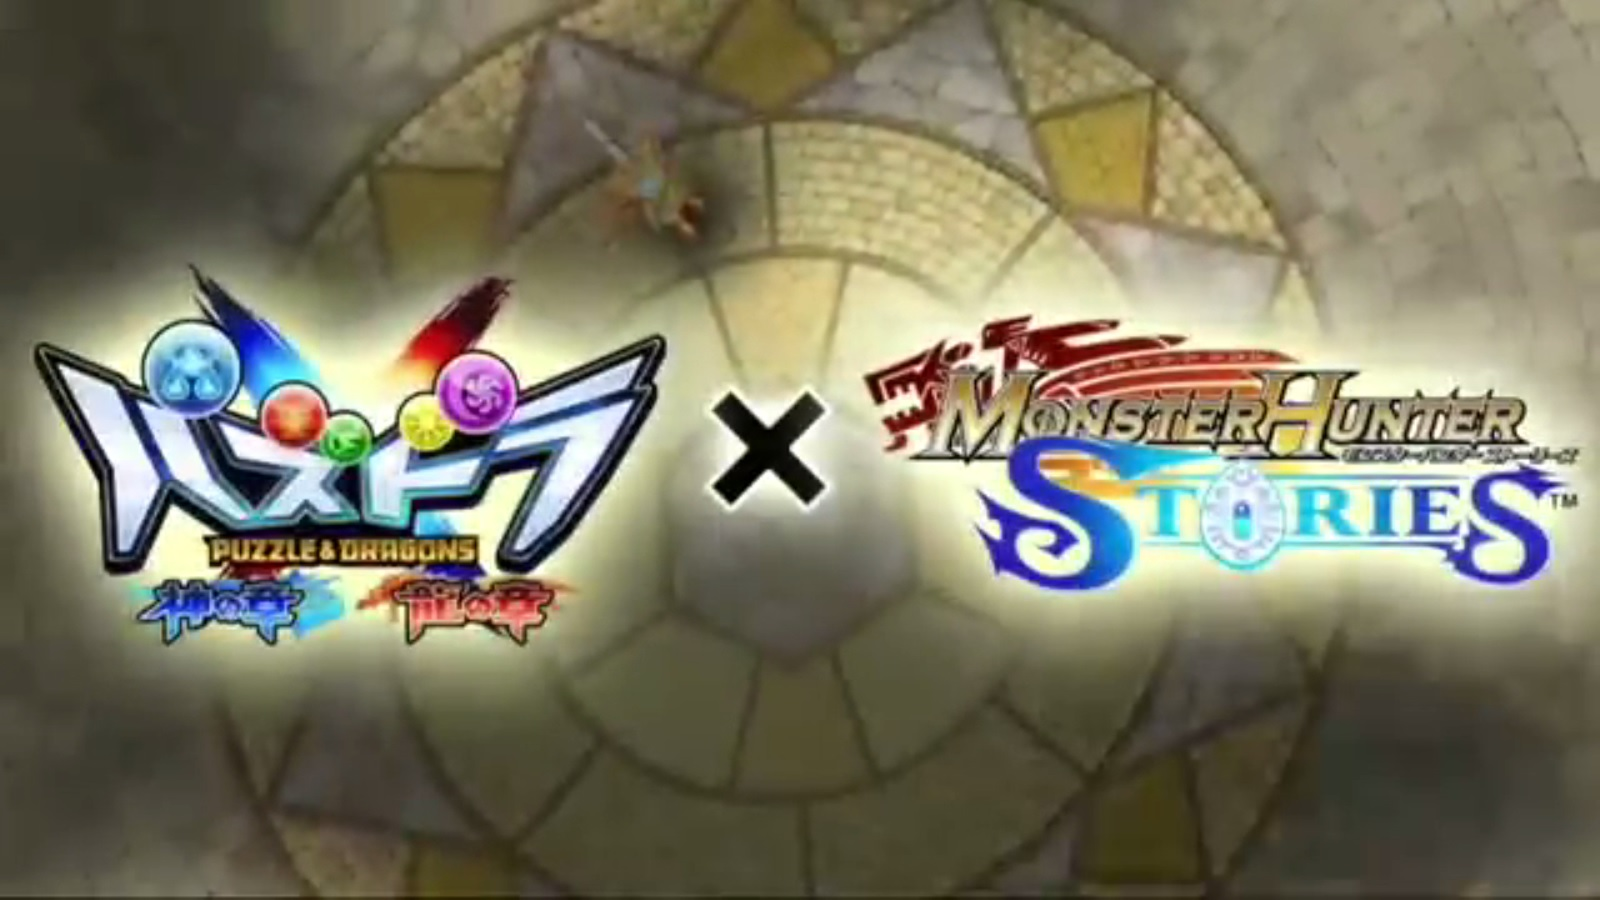 puzzle-dragons-x-monster-hunter-stories